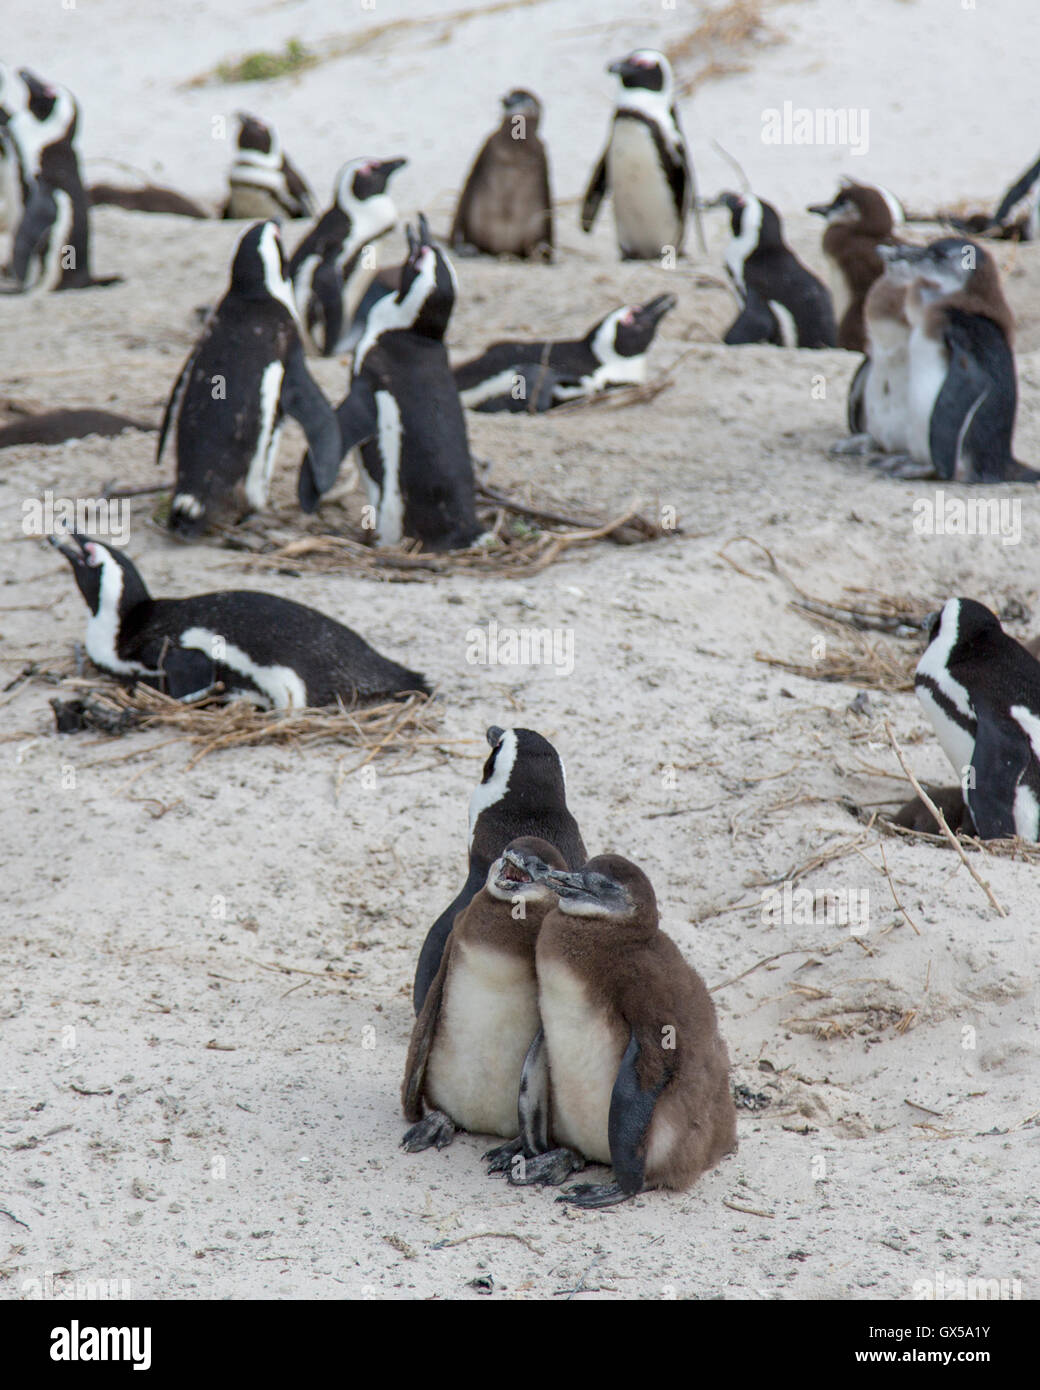 Penguin colony with nesting penguins and two baby penguins at Boulder Beach, South Africa - Stock Image